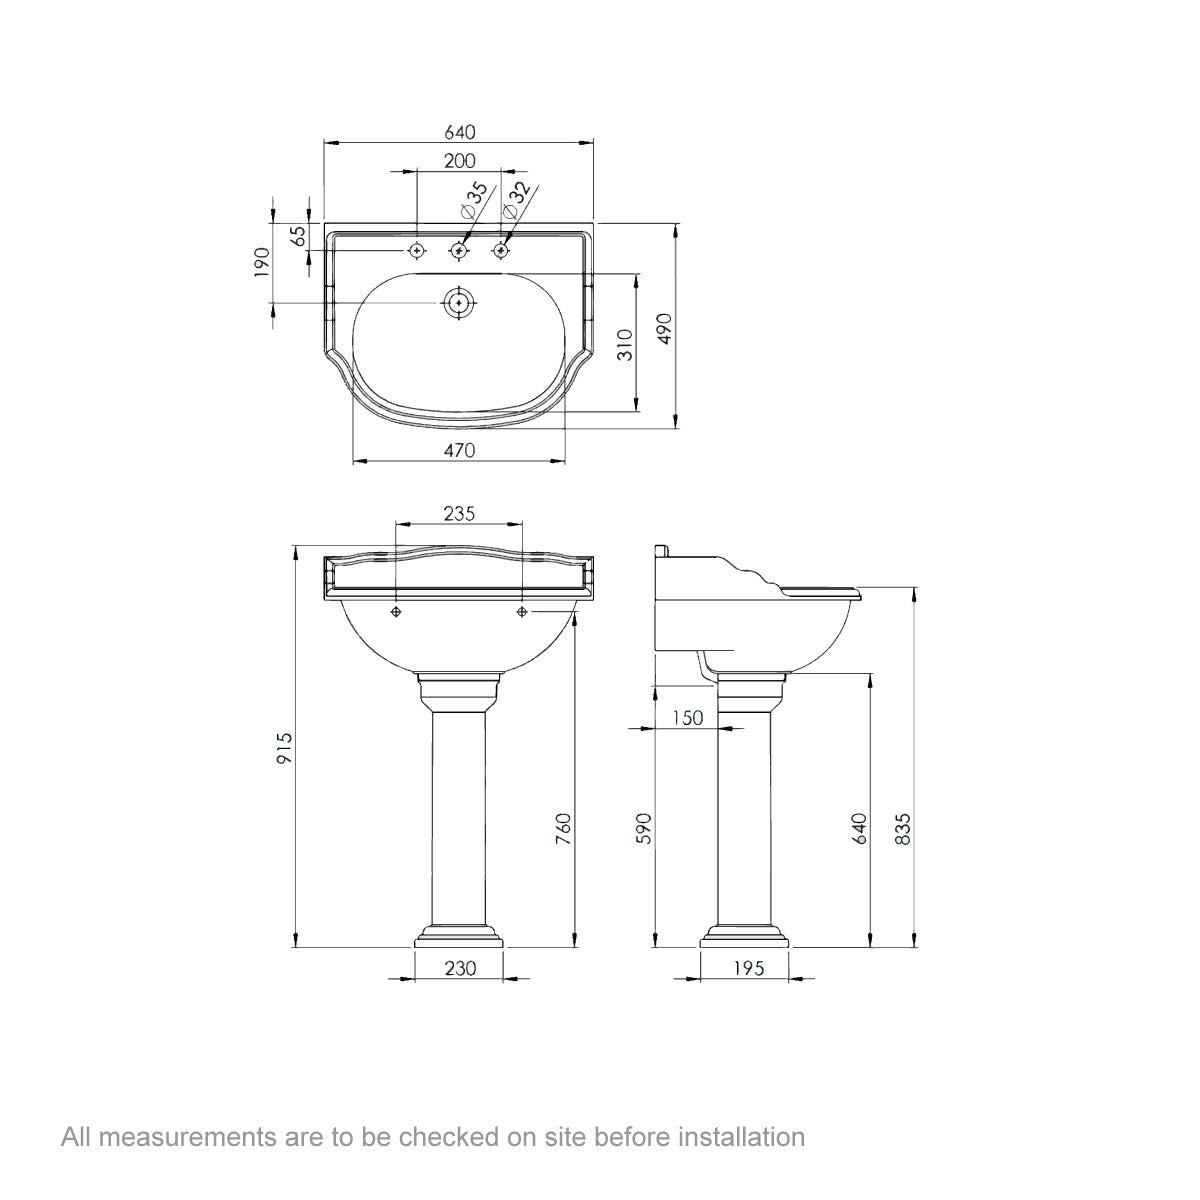 Dimensions for Belle de Louvain Bellini close coupled toilet and full pedestal suite with incalux fittings and taps